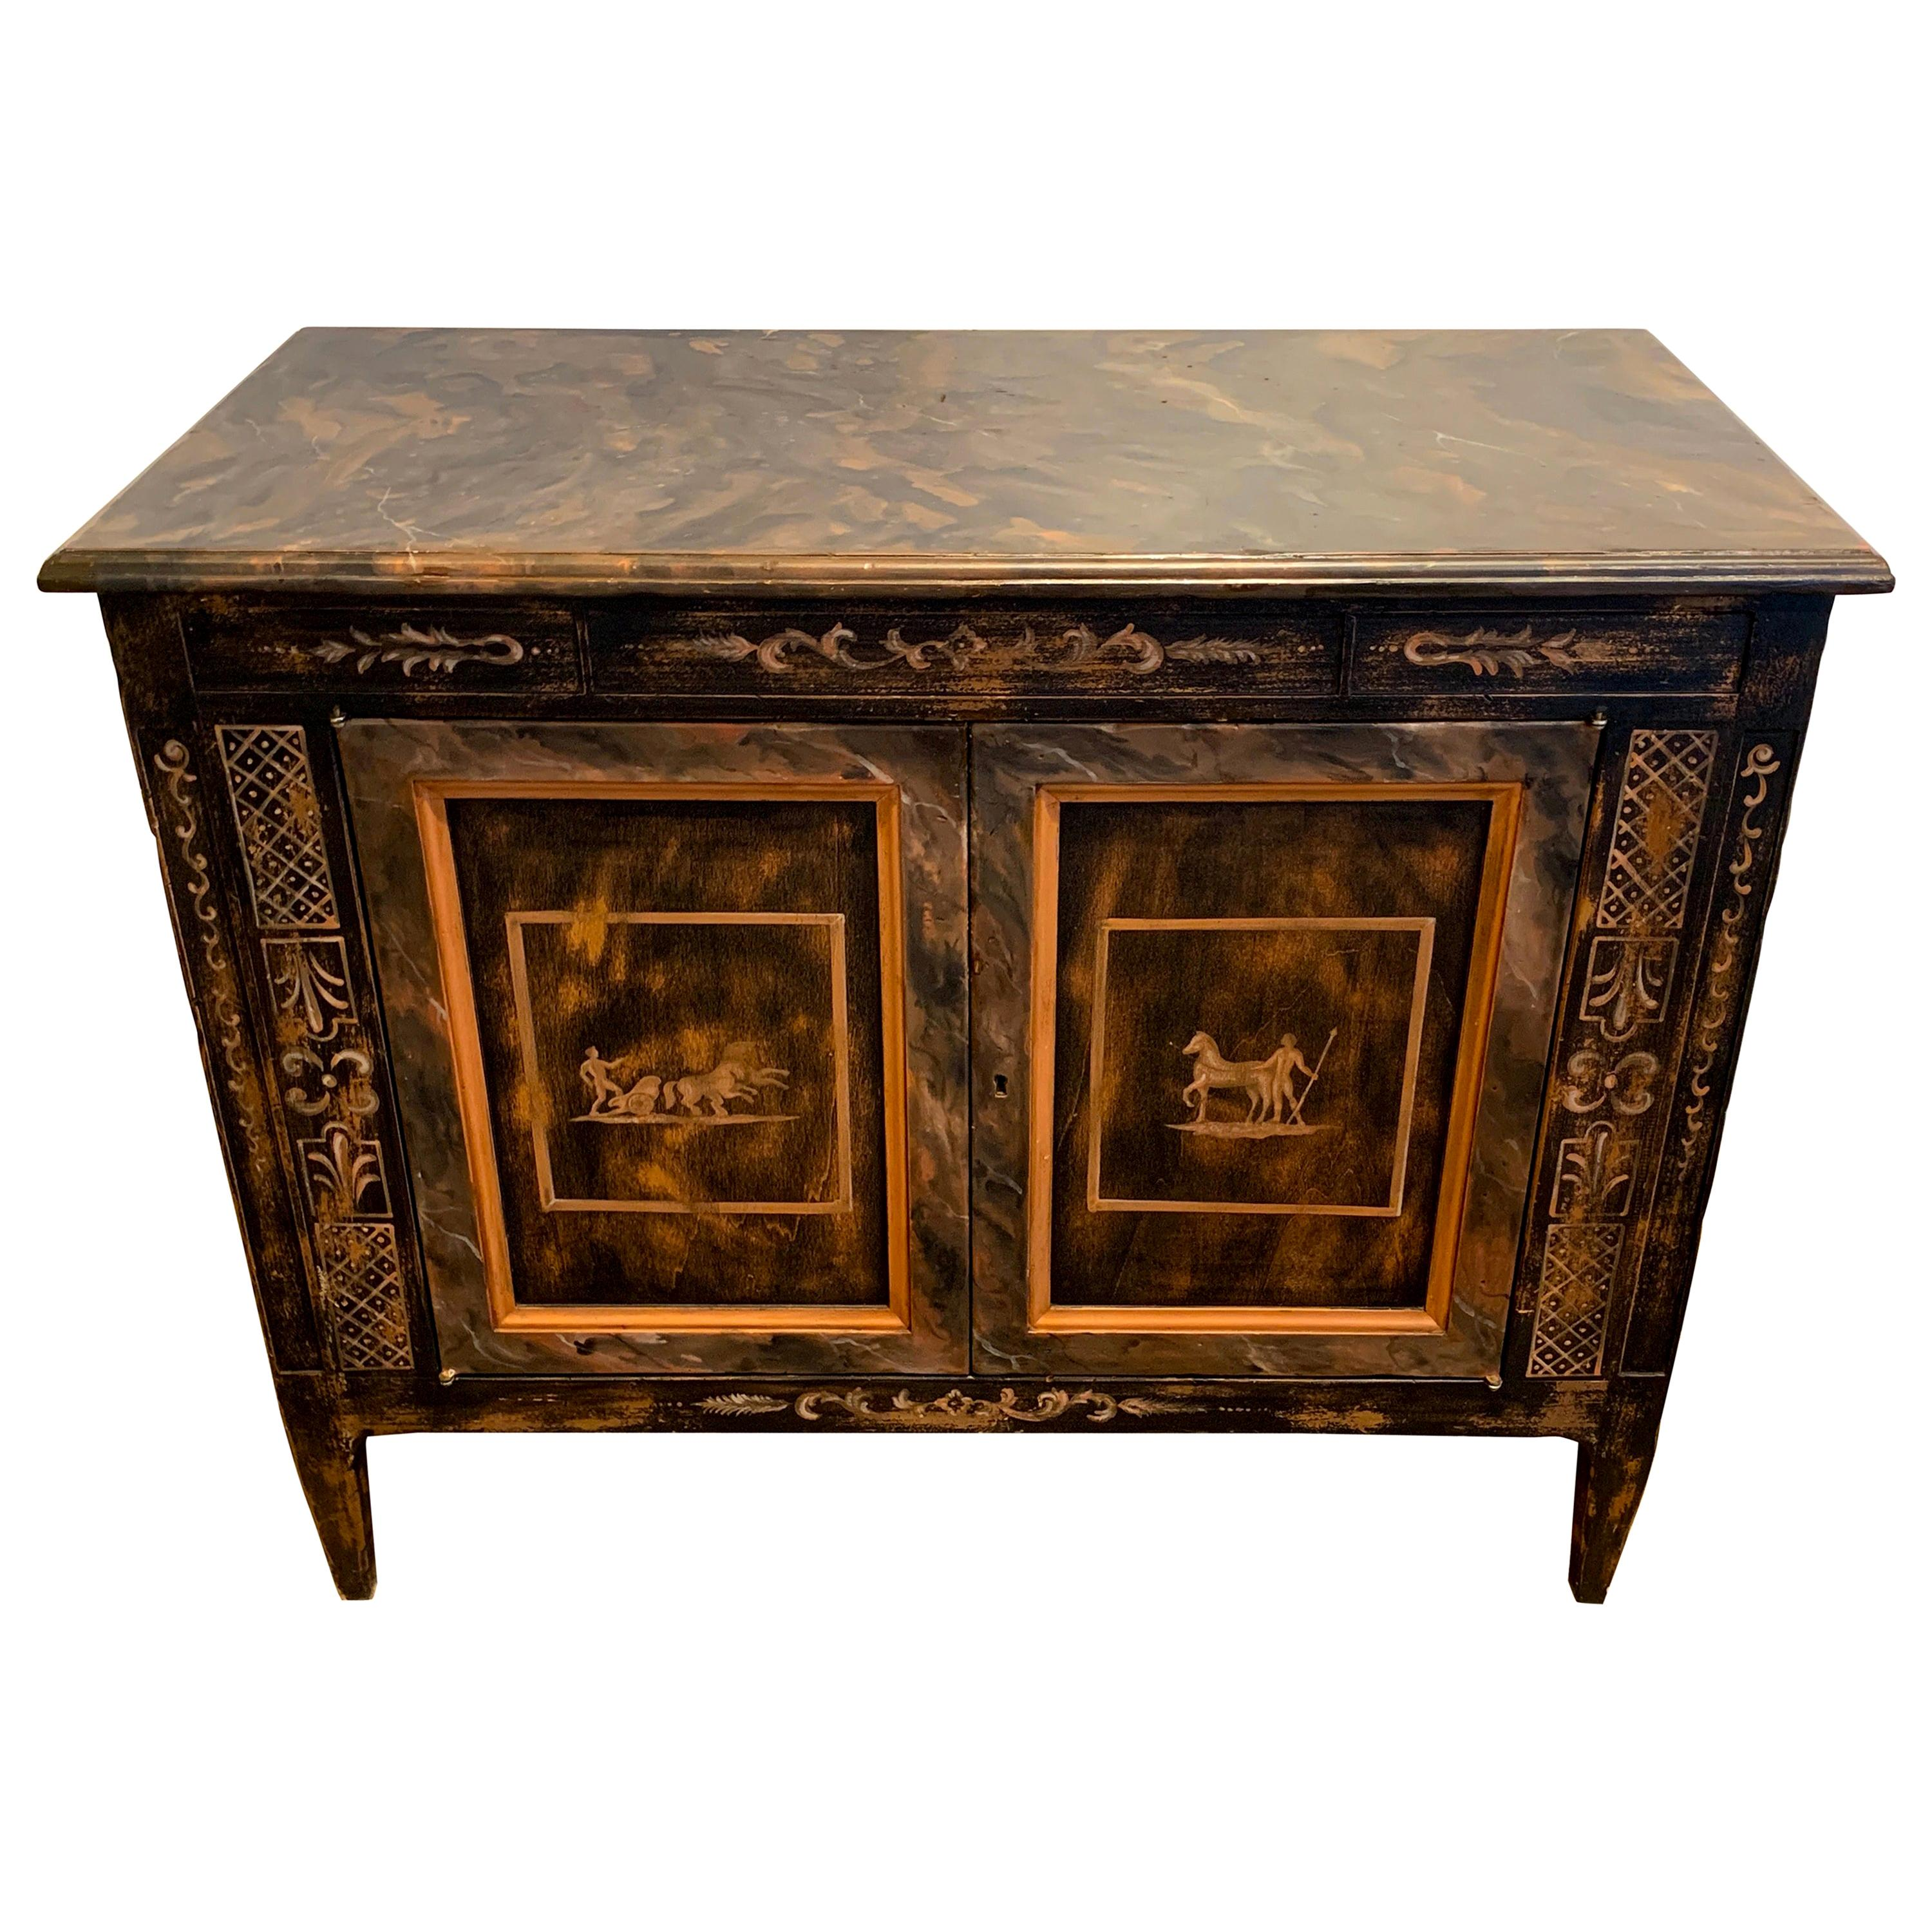 Fine Italian Neoclassical Painted Two-Door Commode